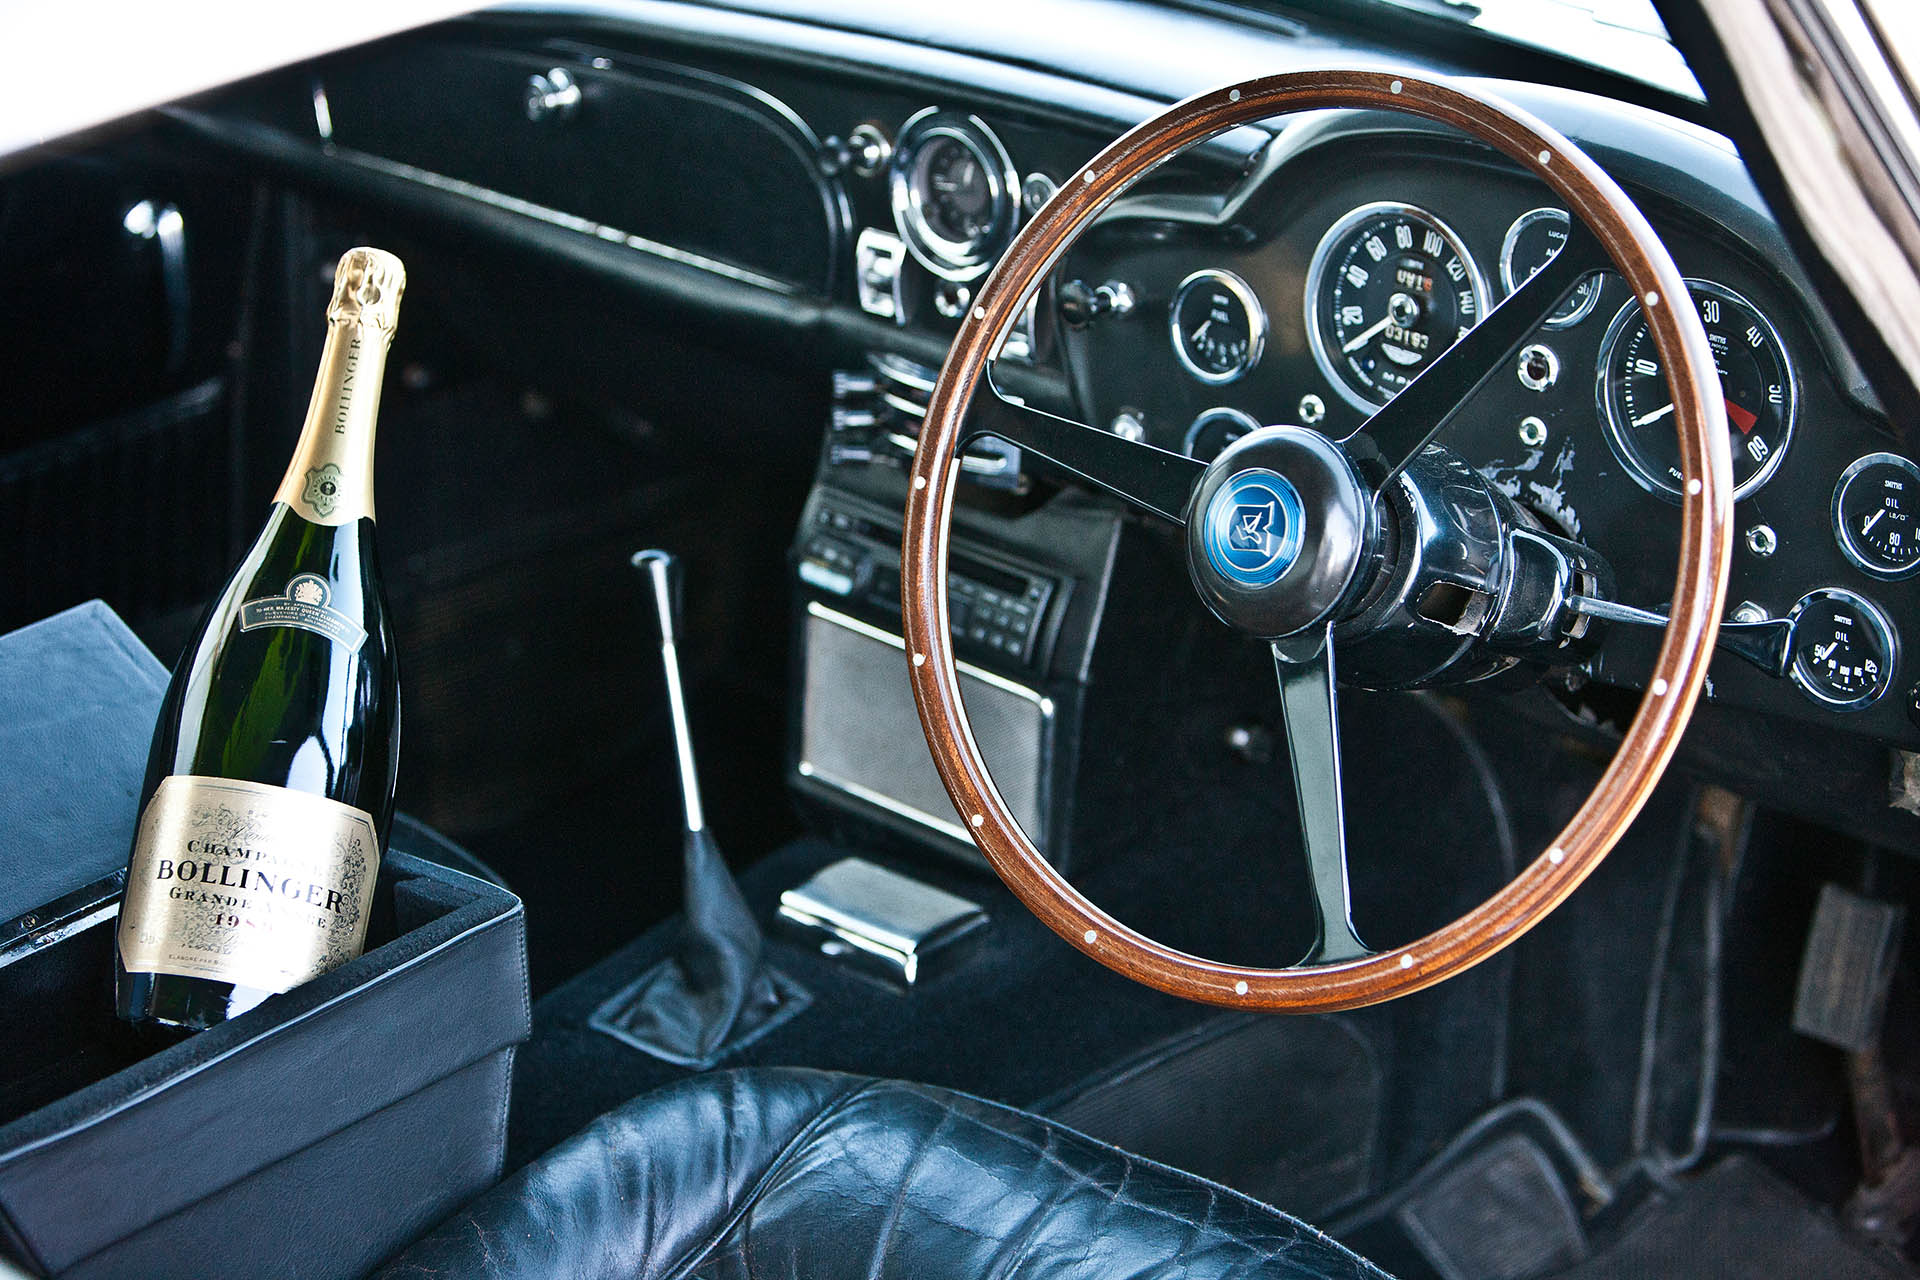 CEX24F Dashboard in Aston Martin DB5, James Bond classic car